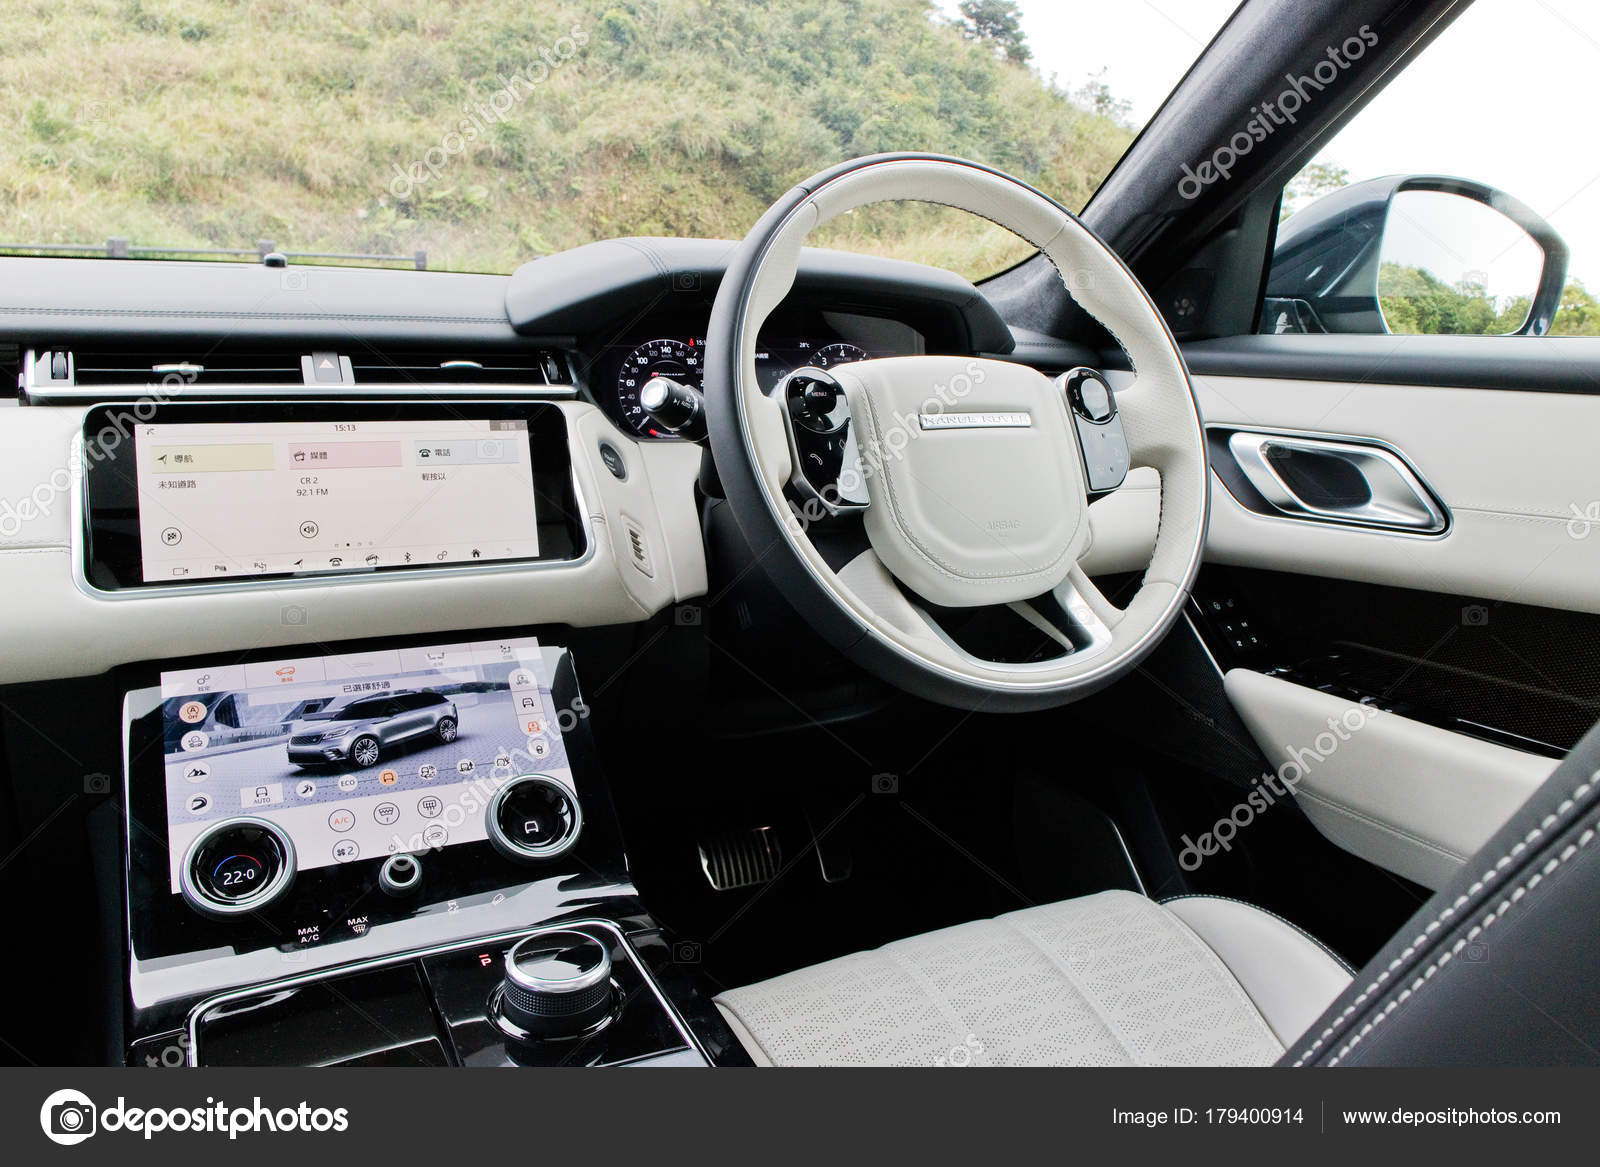 Range Rover Velar 2017 Interior – Stock Editorial Photo © teddyleung ...